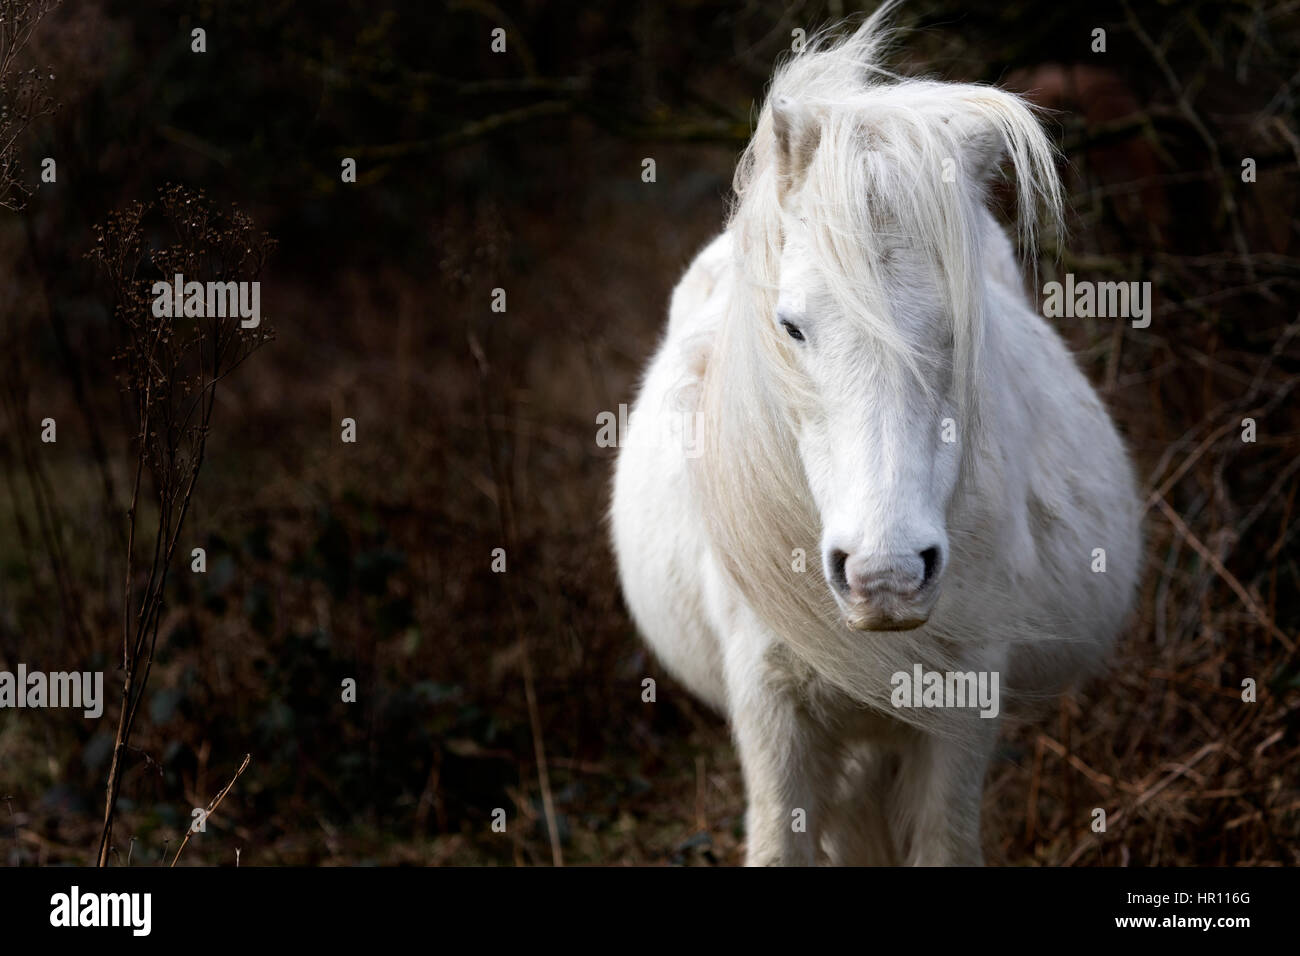 Wild Carneddau Pony with her mane being blowing in the wind from Storm Ewan that hit North Wales - Stock Image